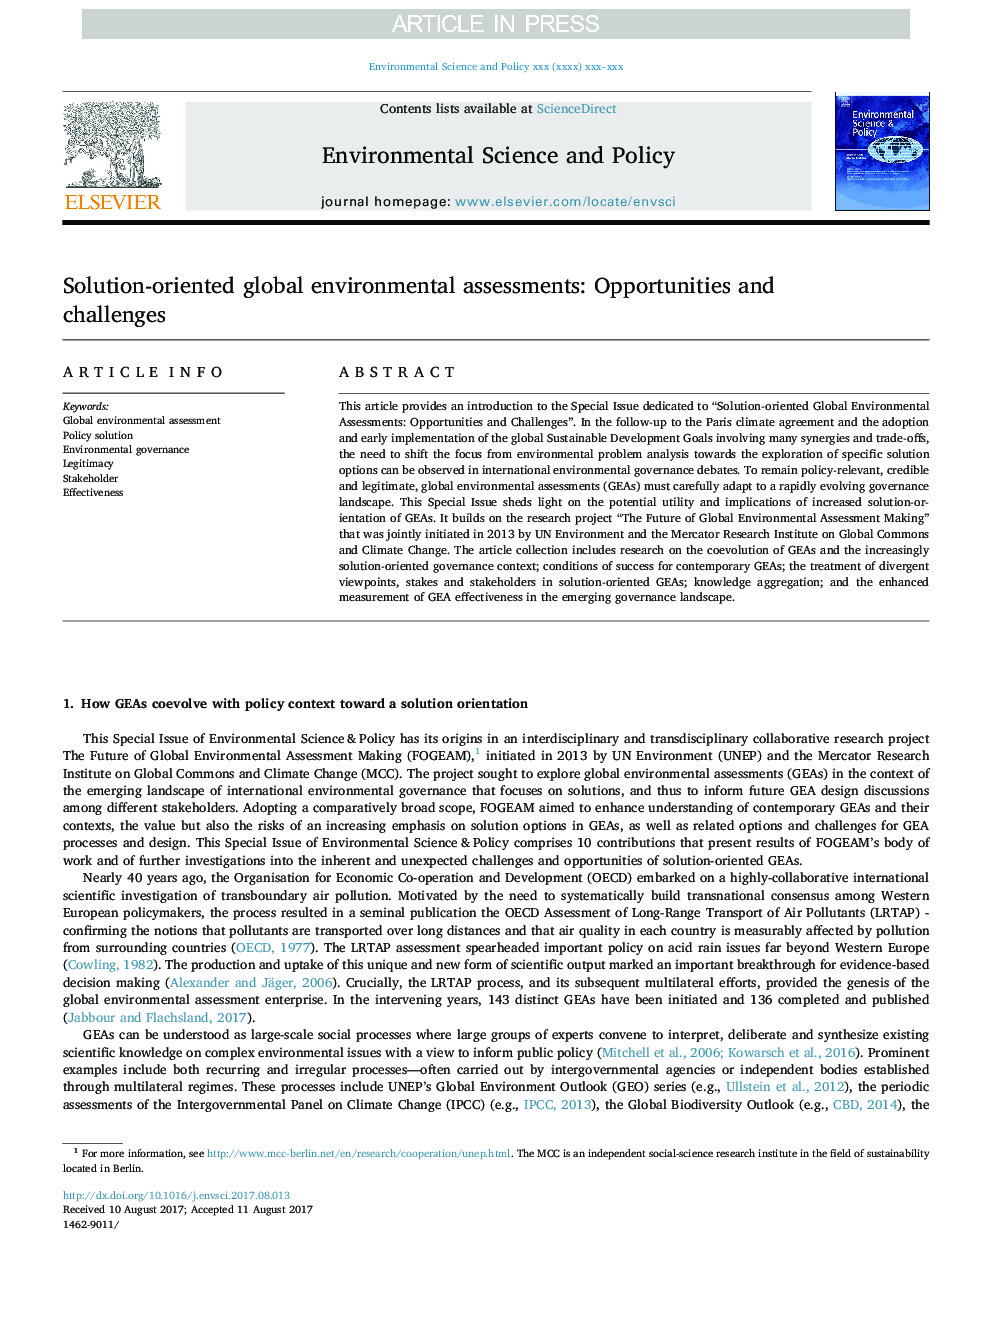 Solution-oriented global environmental assessments: Opportunities and challenges